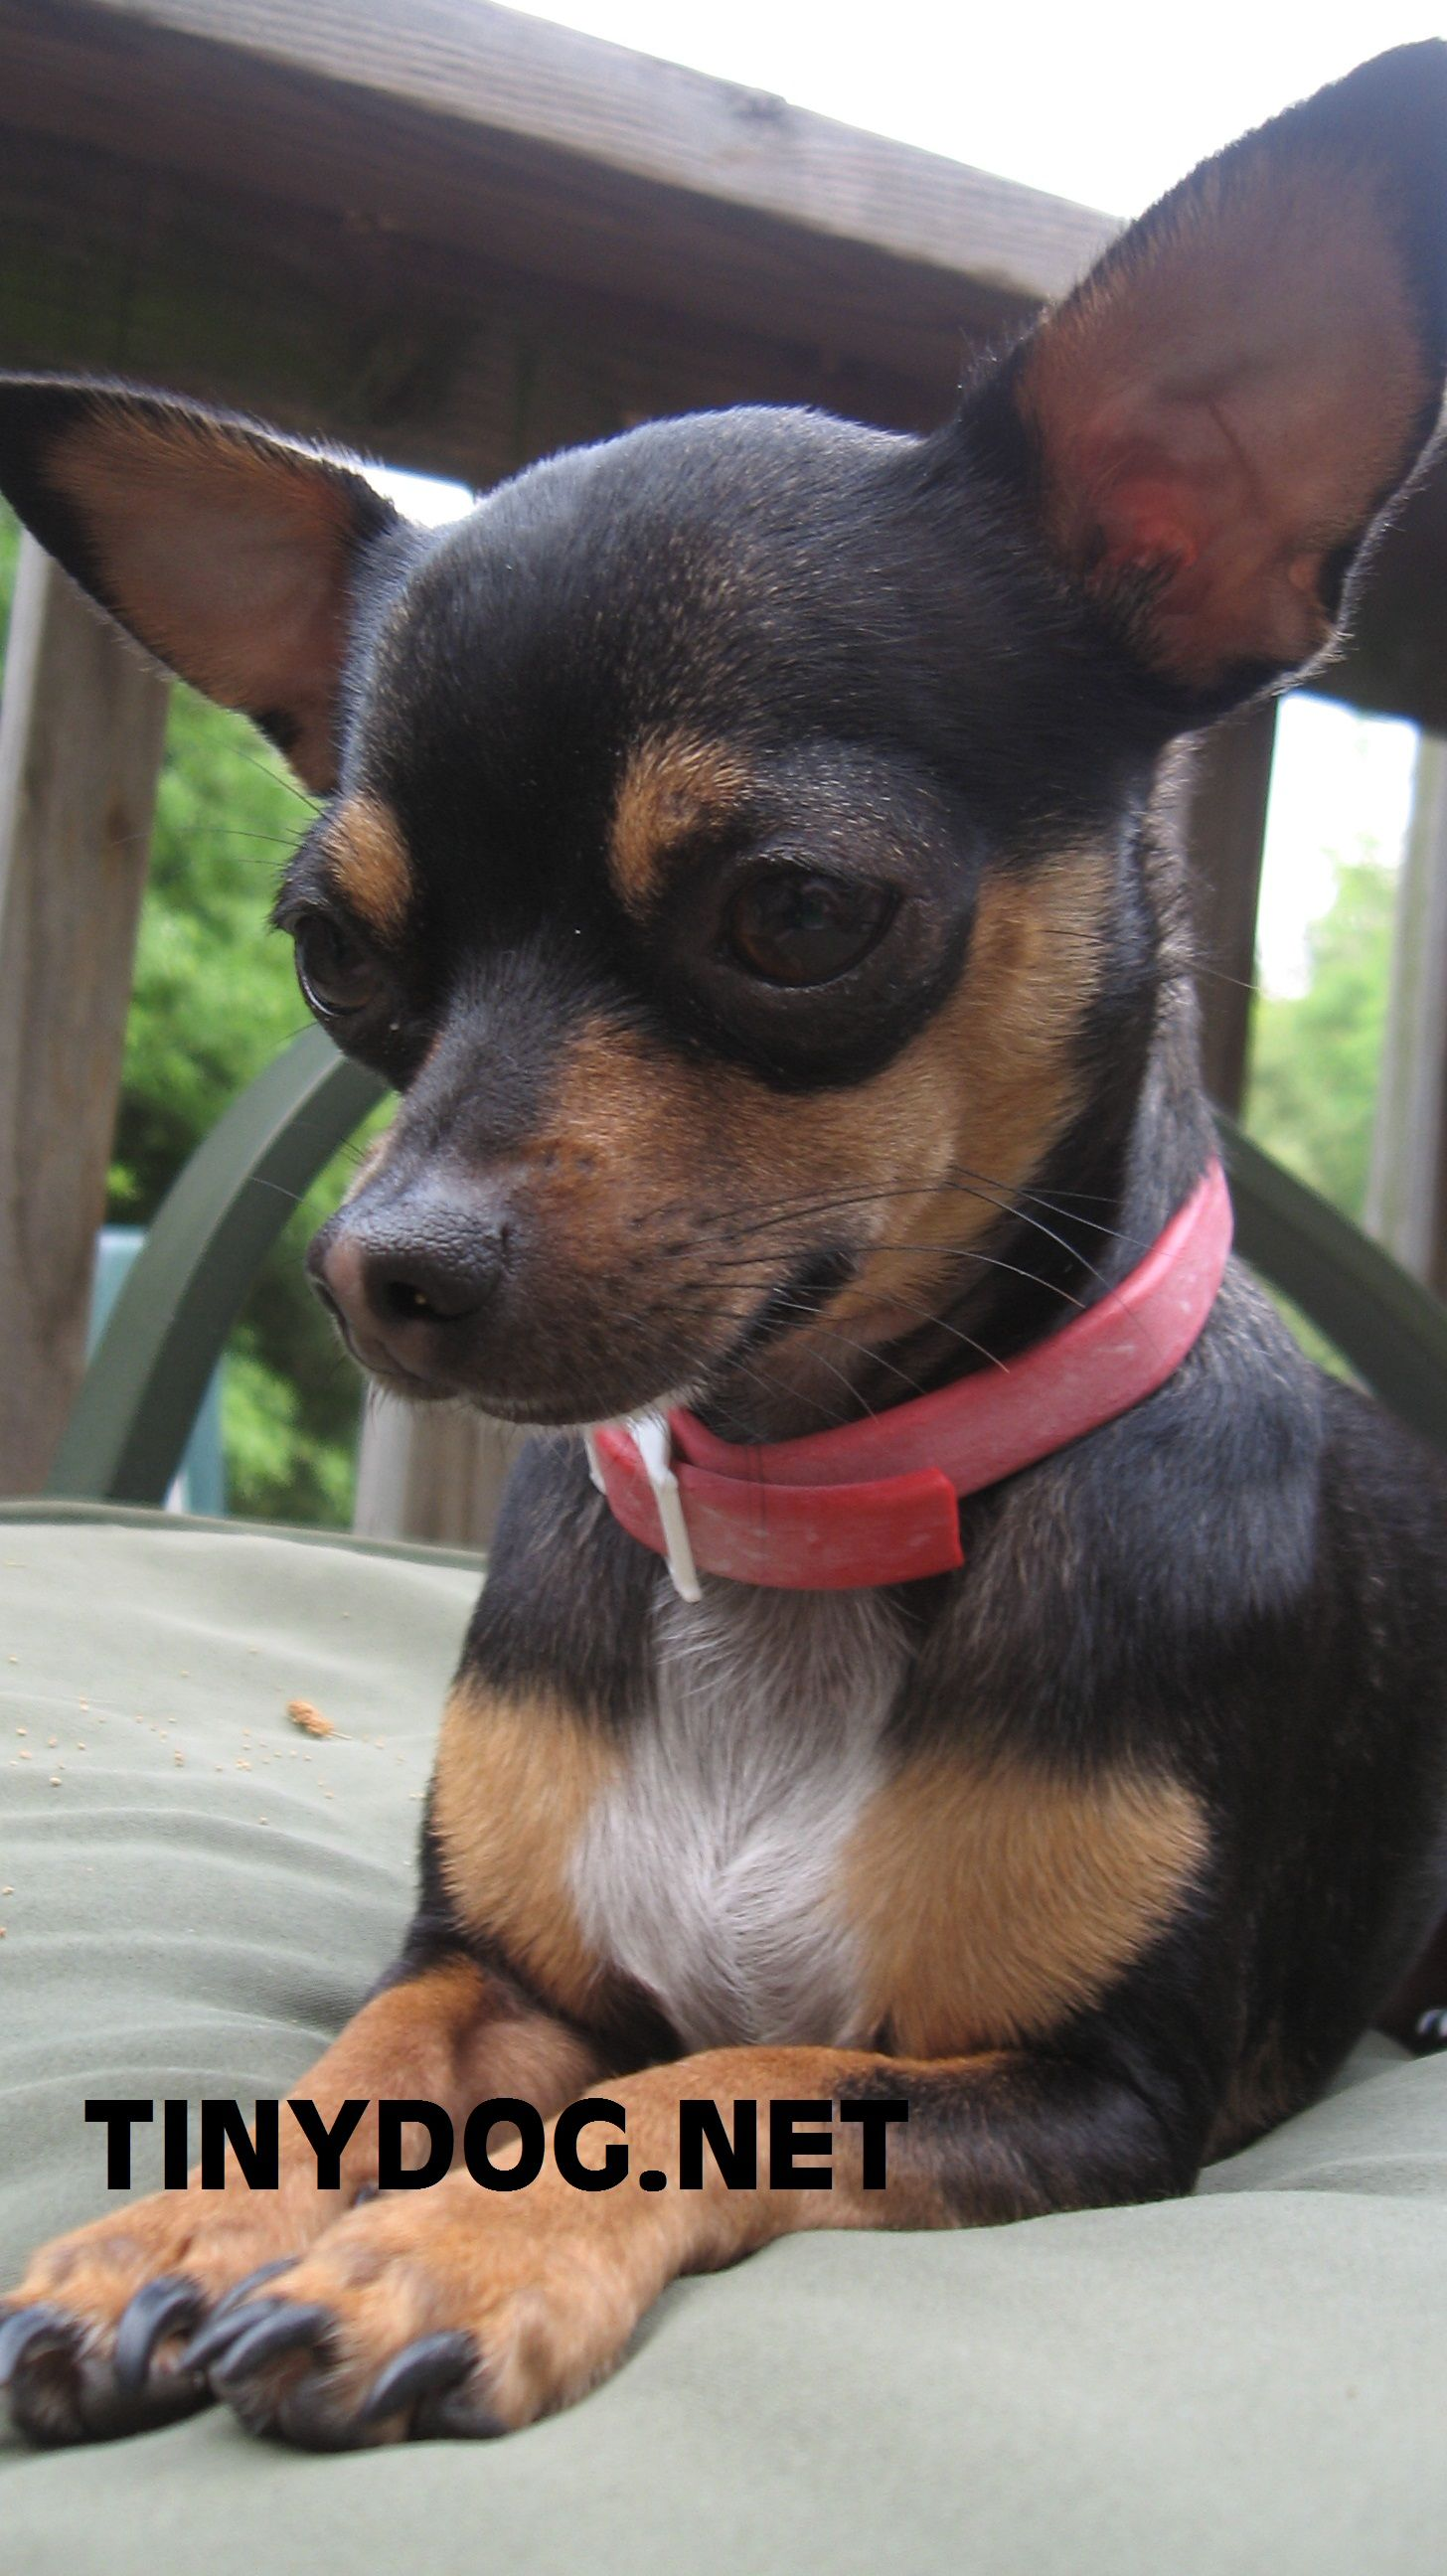 Chihuahua Weight Chart Overweight A Dog Small Change 1 2 Pound Huge Difference Earance Read More On Dogs Tips At The Image